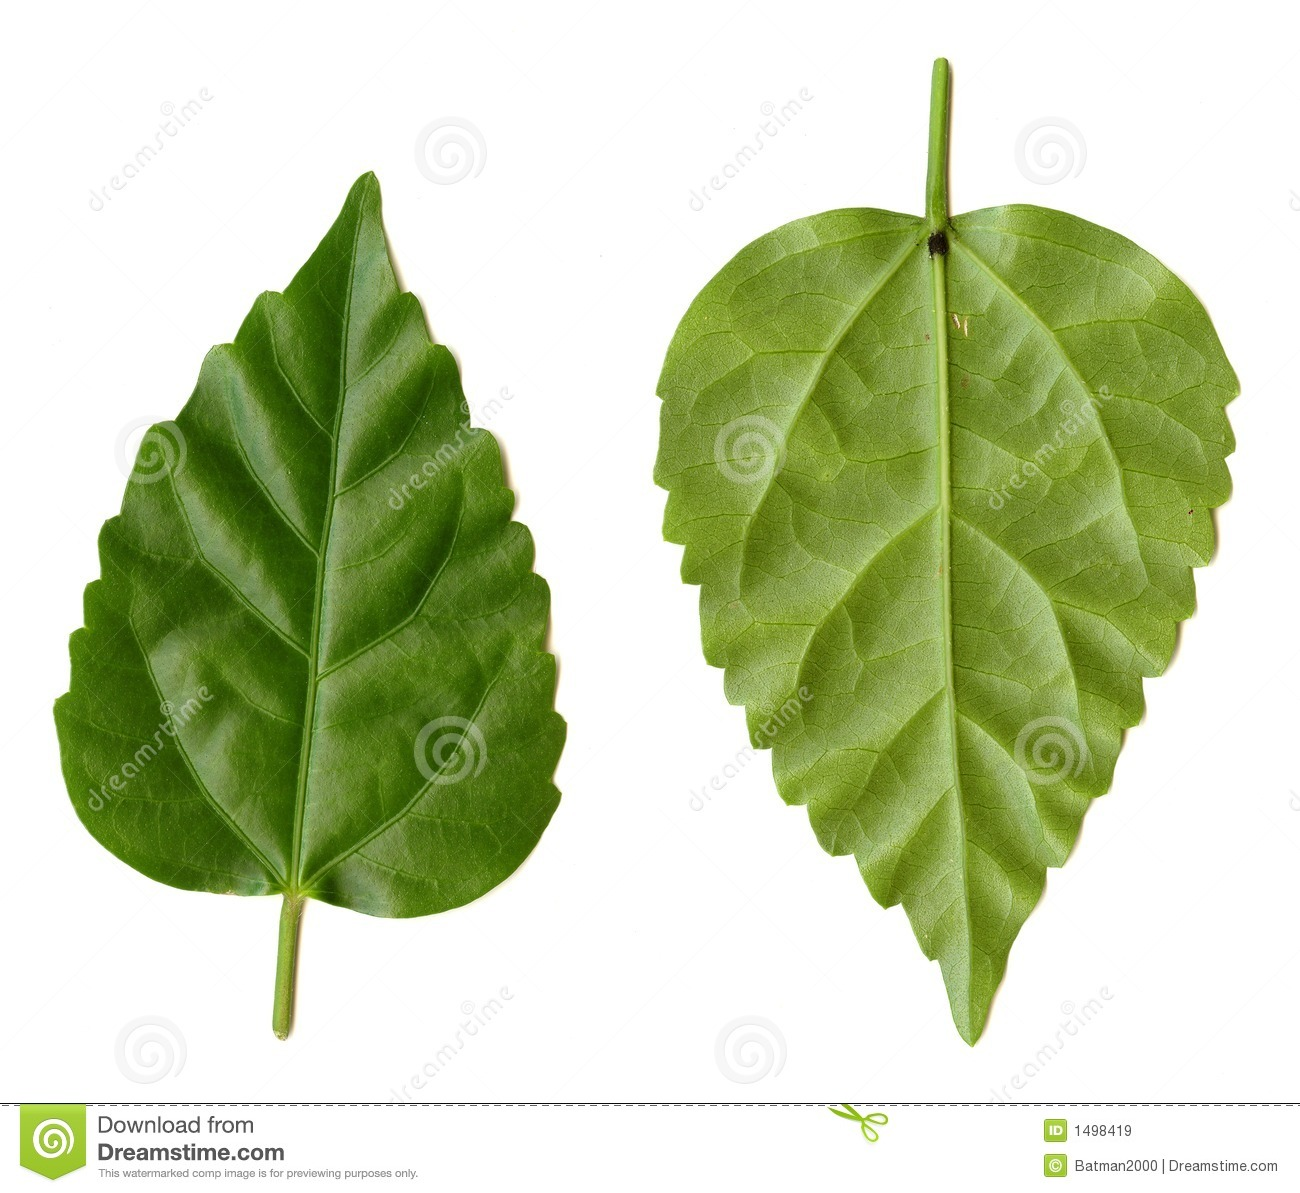 Green leaves on a white background for use as design elements.